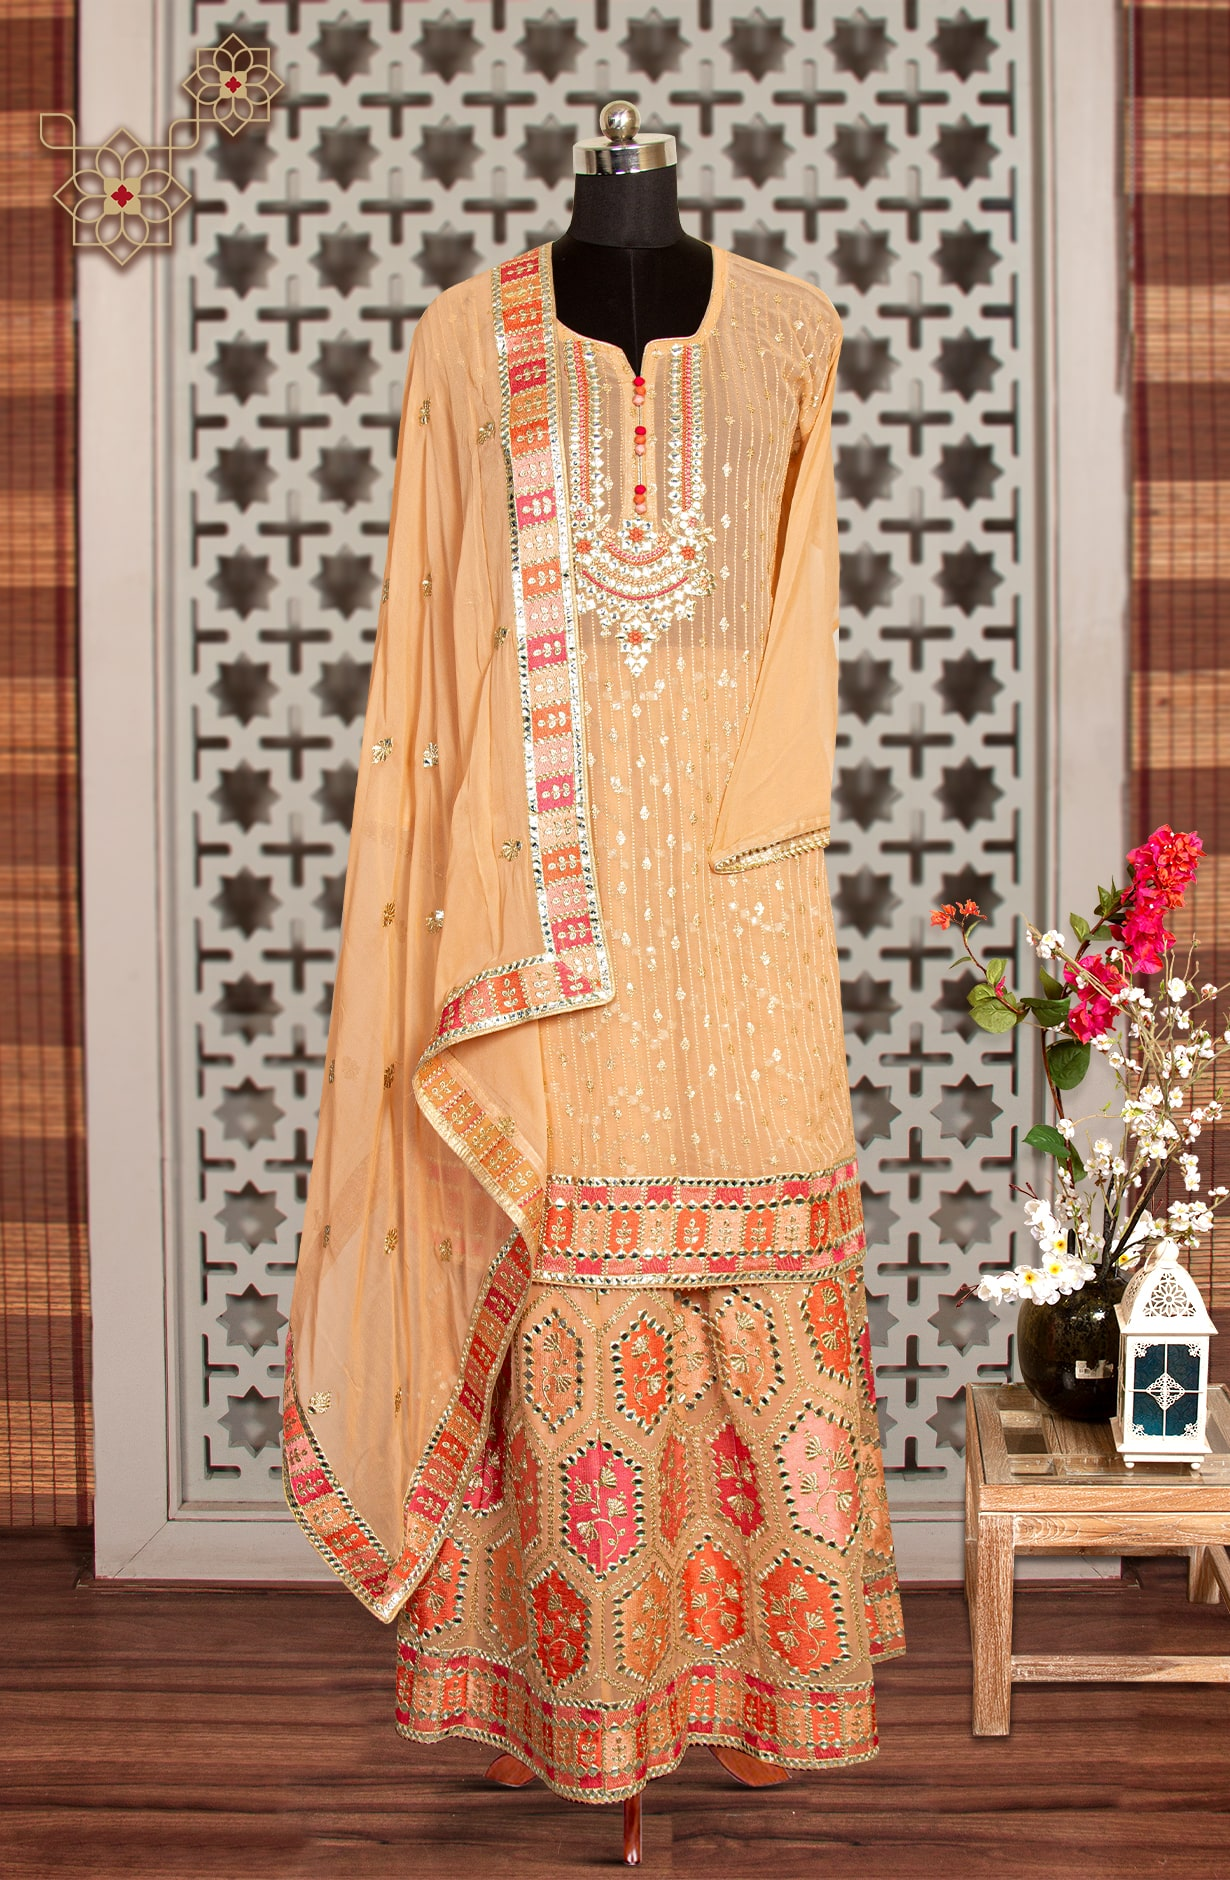 Peach Georgette Partywear Exclusive Suit Set with Skirt - 908-831A